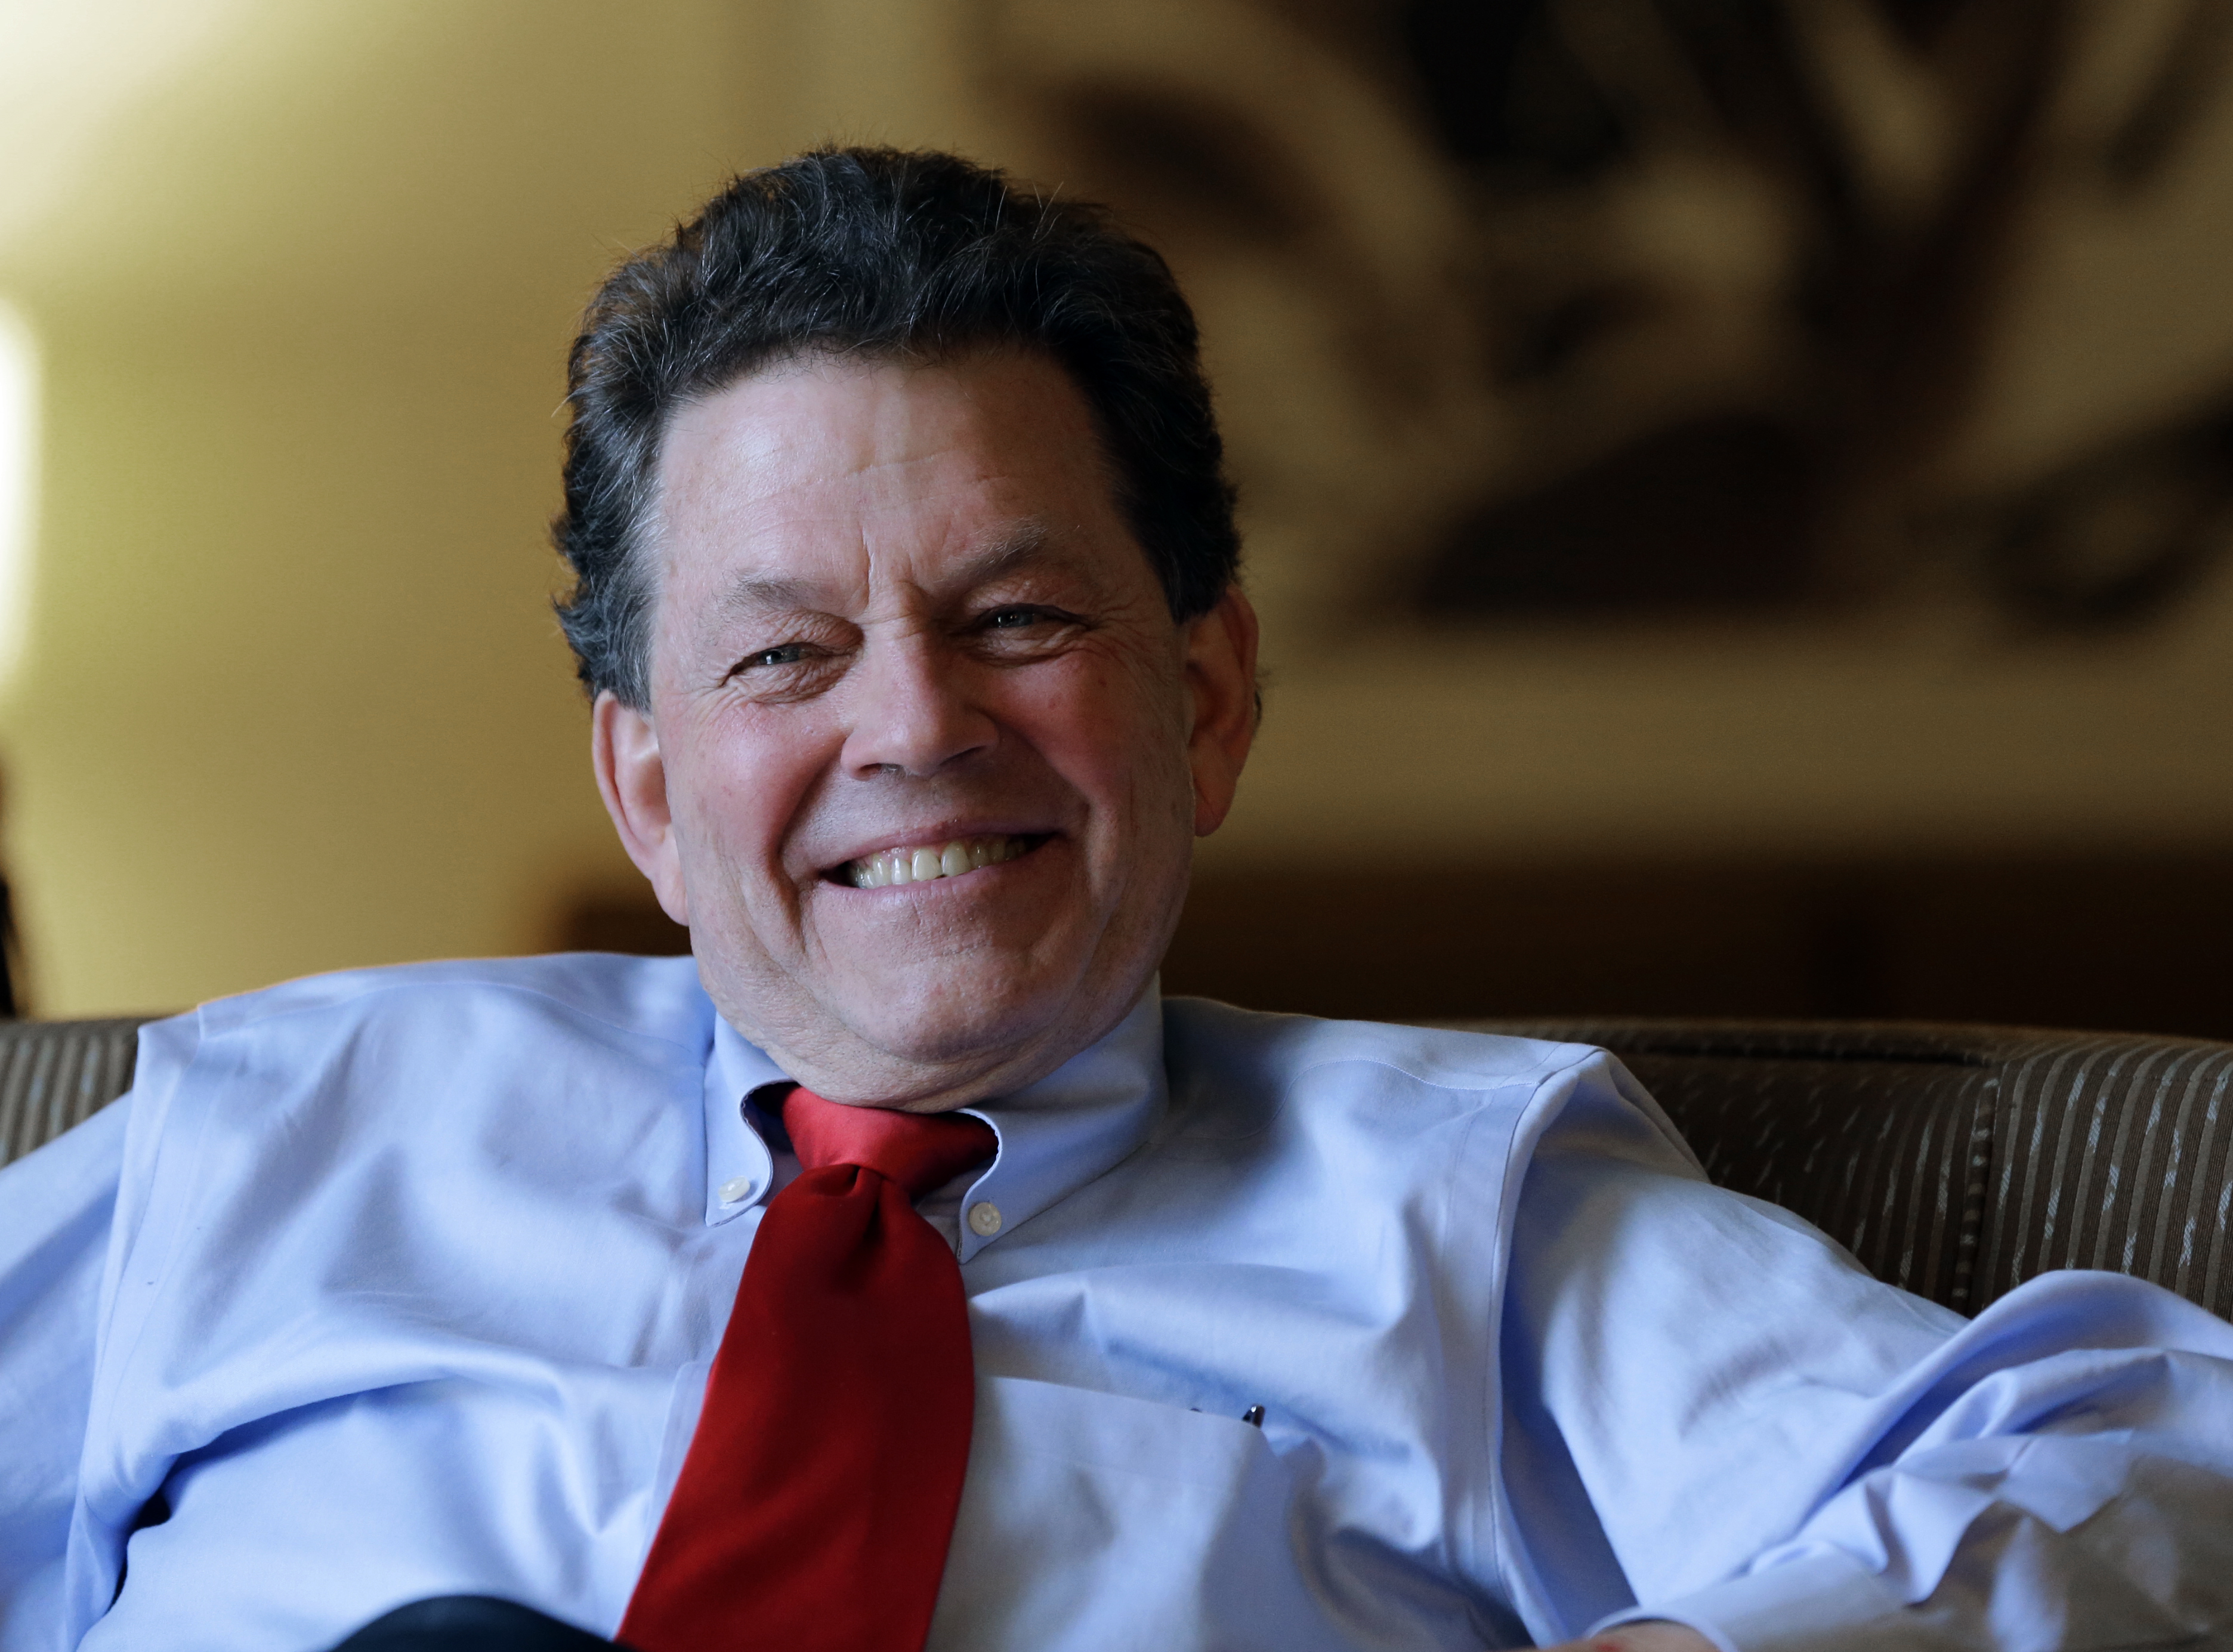 Trump awards Medal of Freedom to Art Laffer, father of 'supply-side' economics